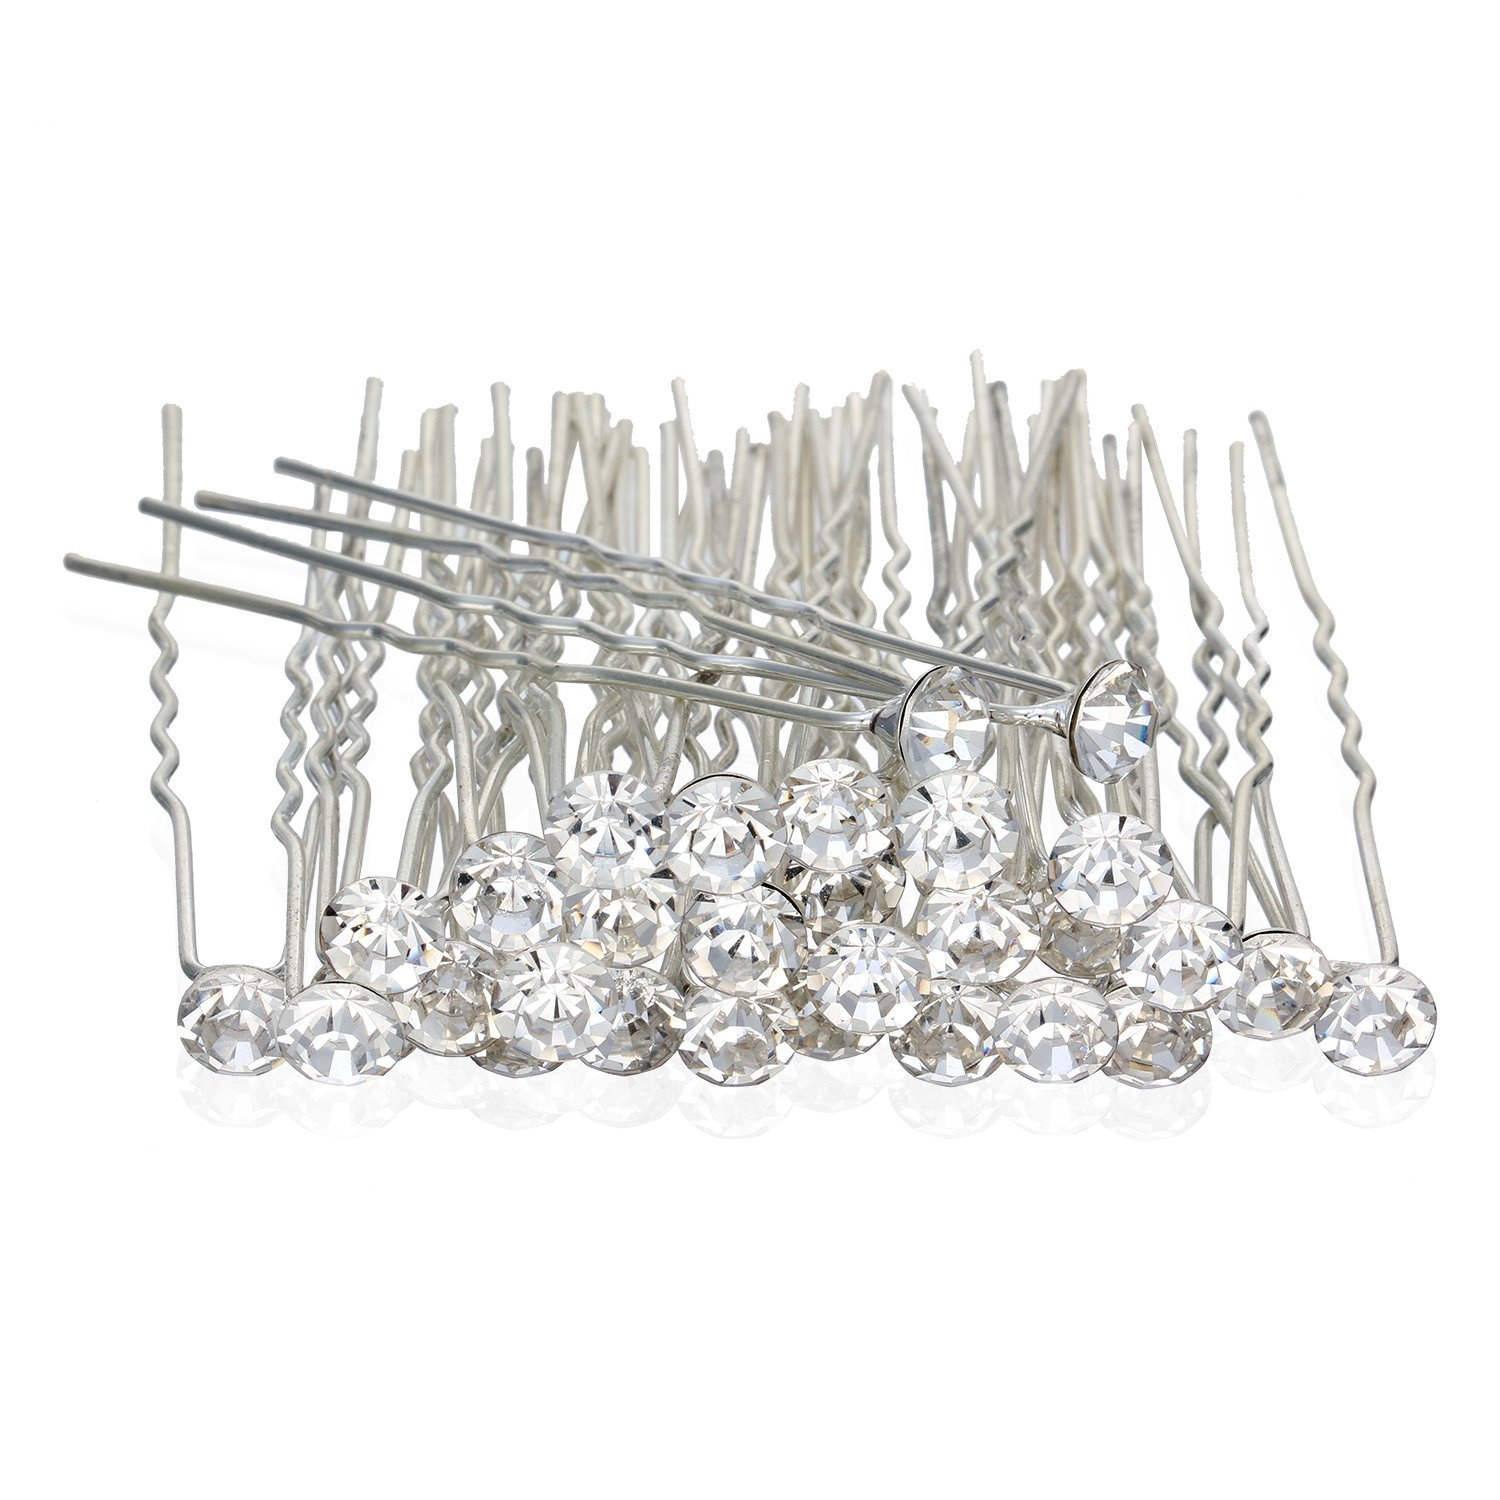 Nymph Code Bridal Clear Crystal Rhinestone Hair Pins Clips Decorative Wedding Flower for Women (30